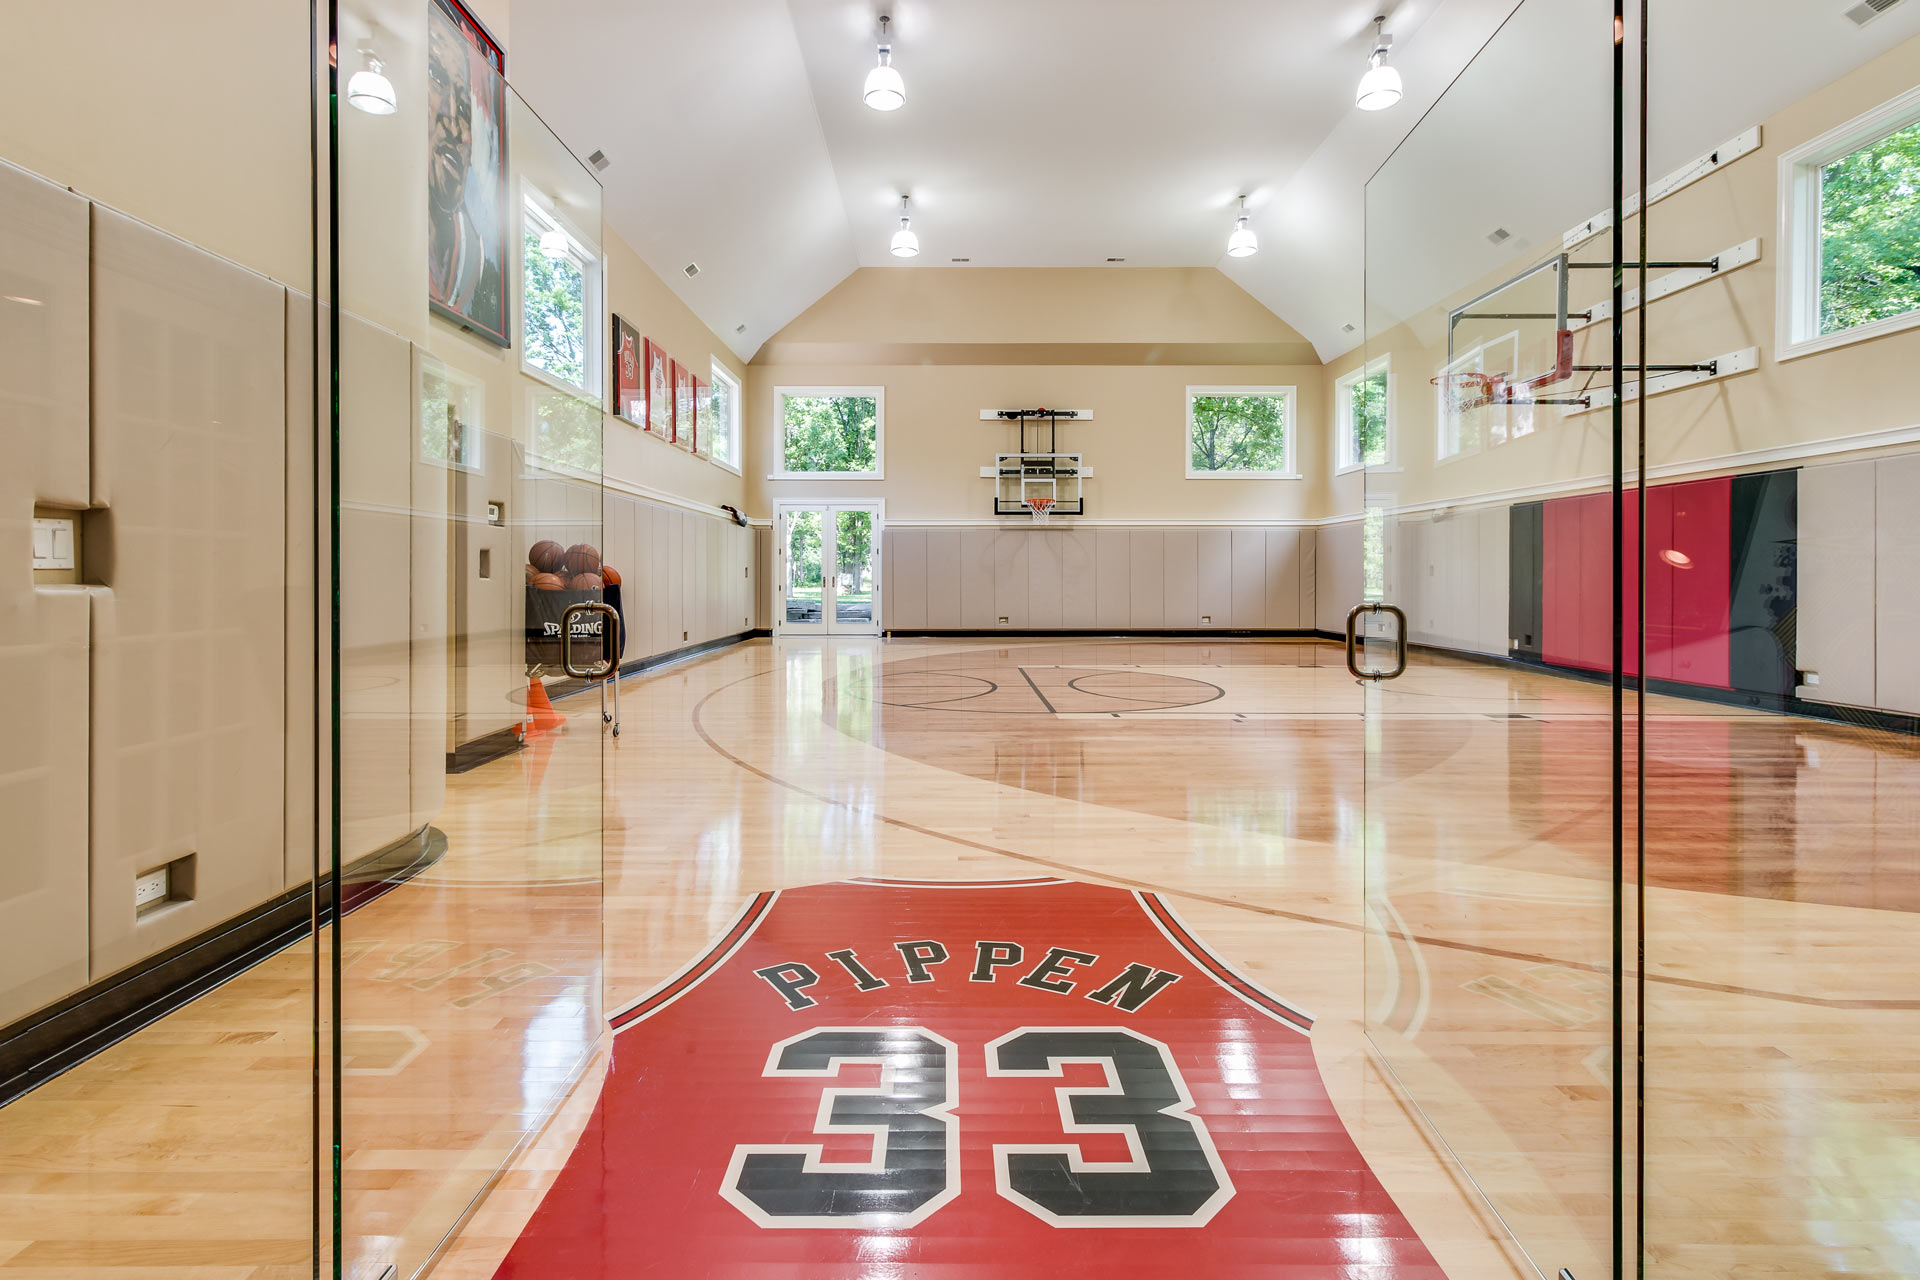 Photo of personal indoor basketball court of former Chicago Bulls player Scottie Pippen.